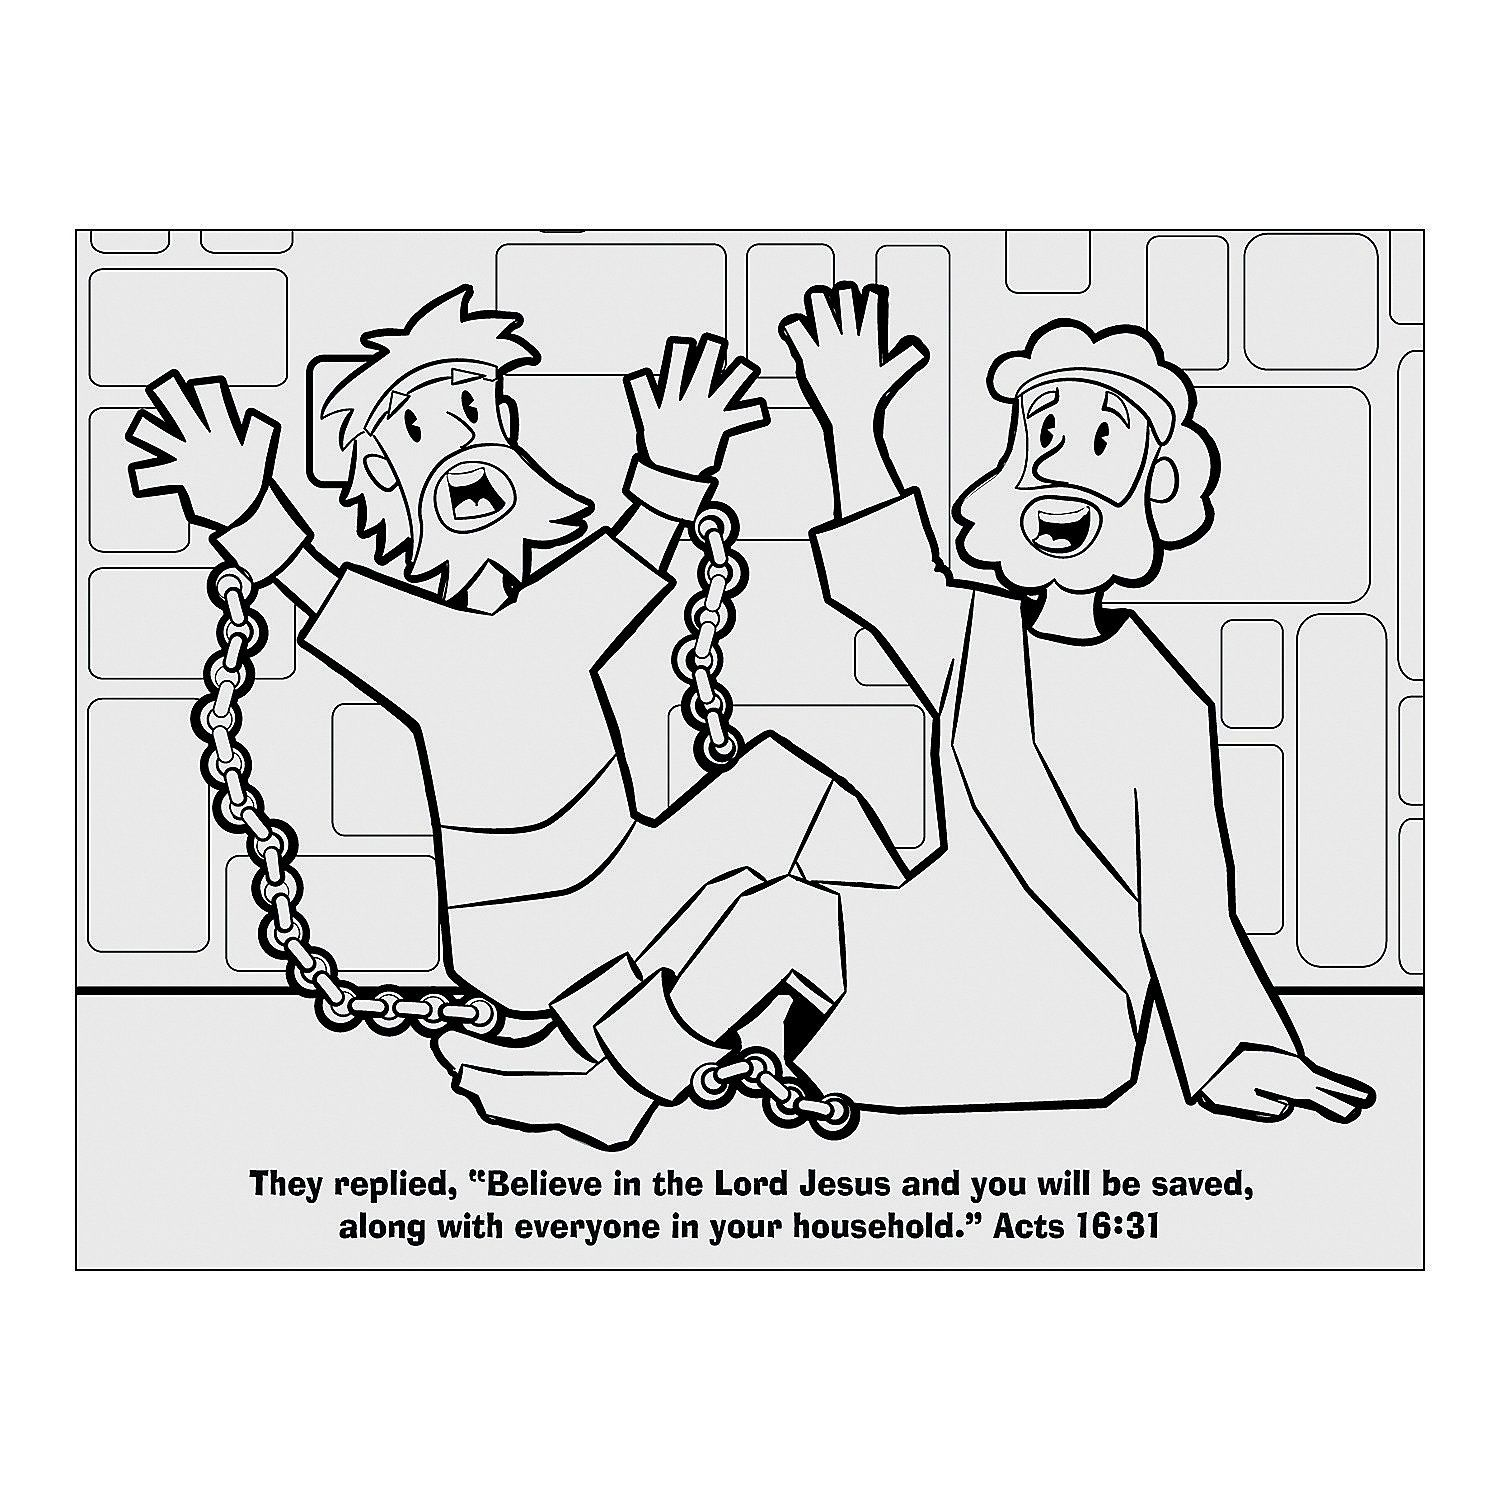 paul and silas coloring page paul and silas coloring page coloring home page and paul coloring silas